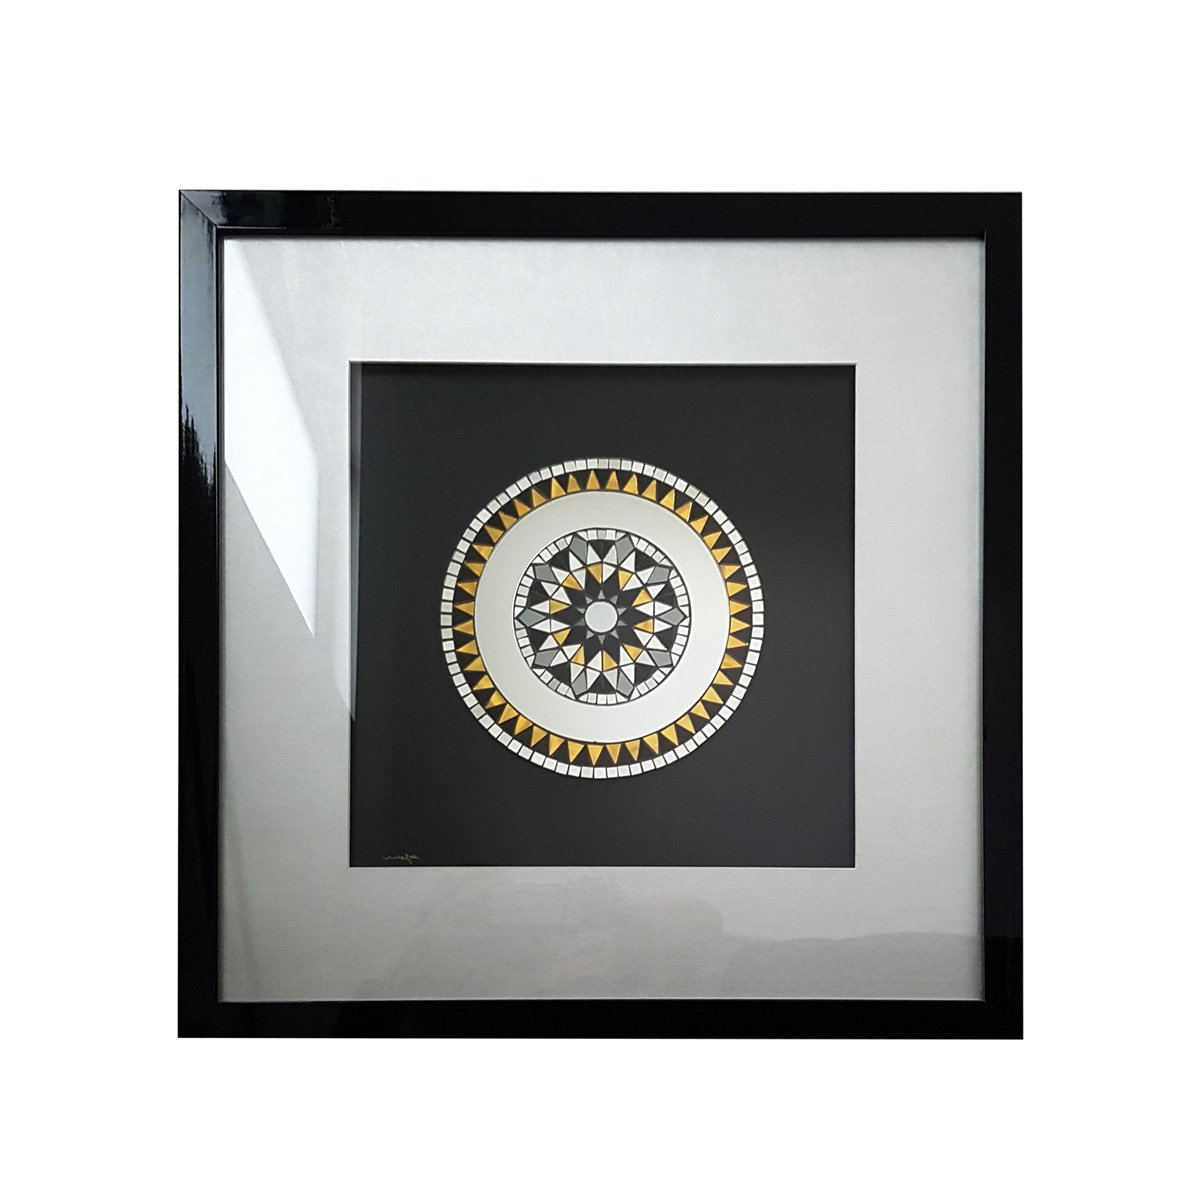 """""""sol And Luna"""" Handmade Mosaic Framed Wall Artmirror Envy 60Cm With Regard To Most Up To Date Mosaic Framed Wall Mirrors (View 1 of 20)"""